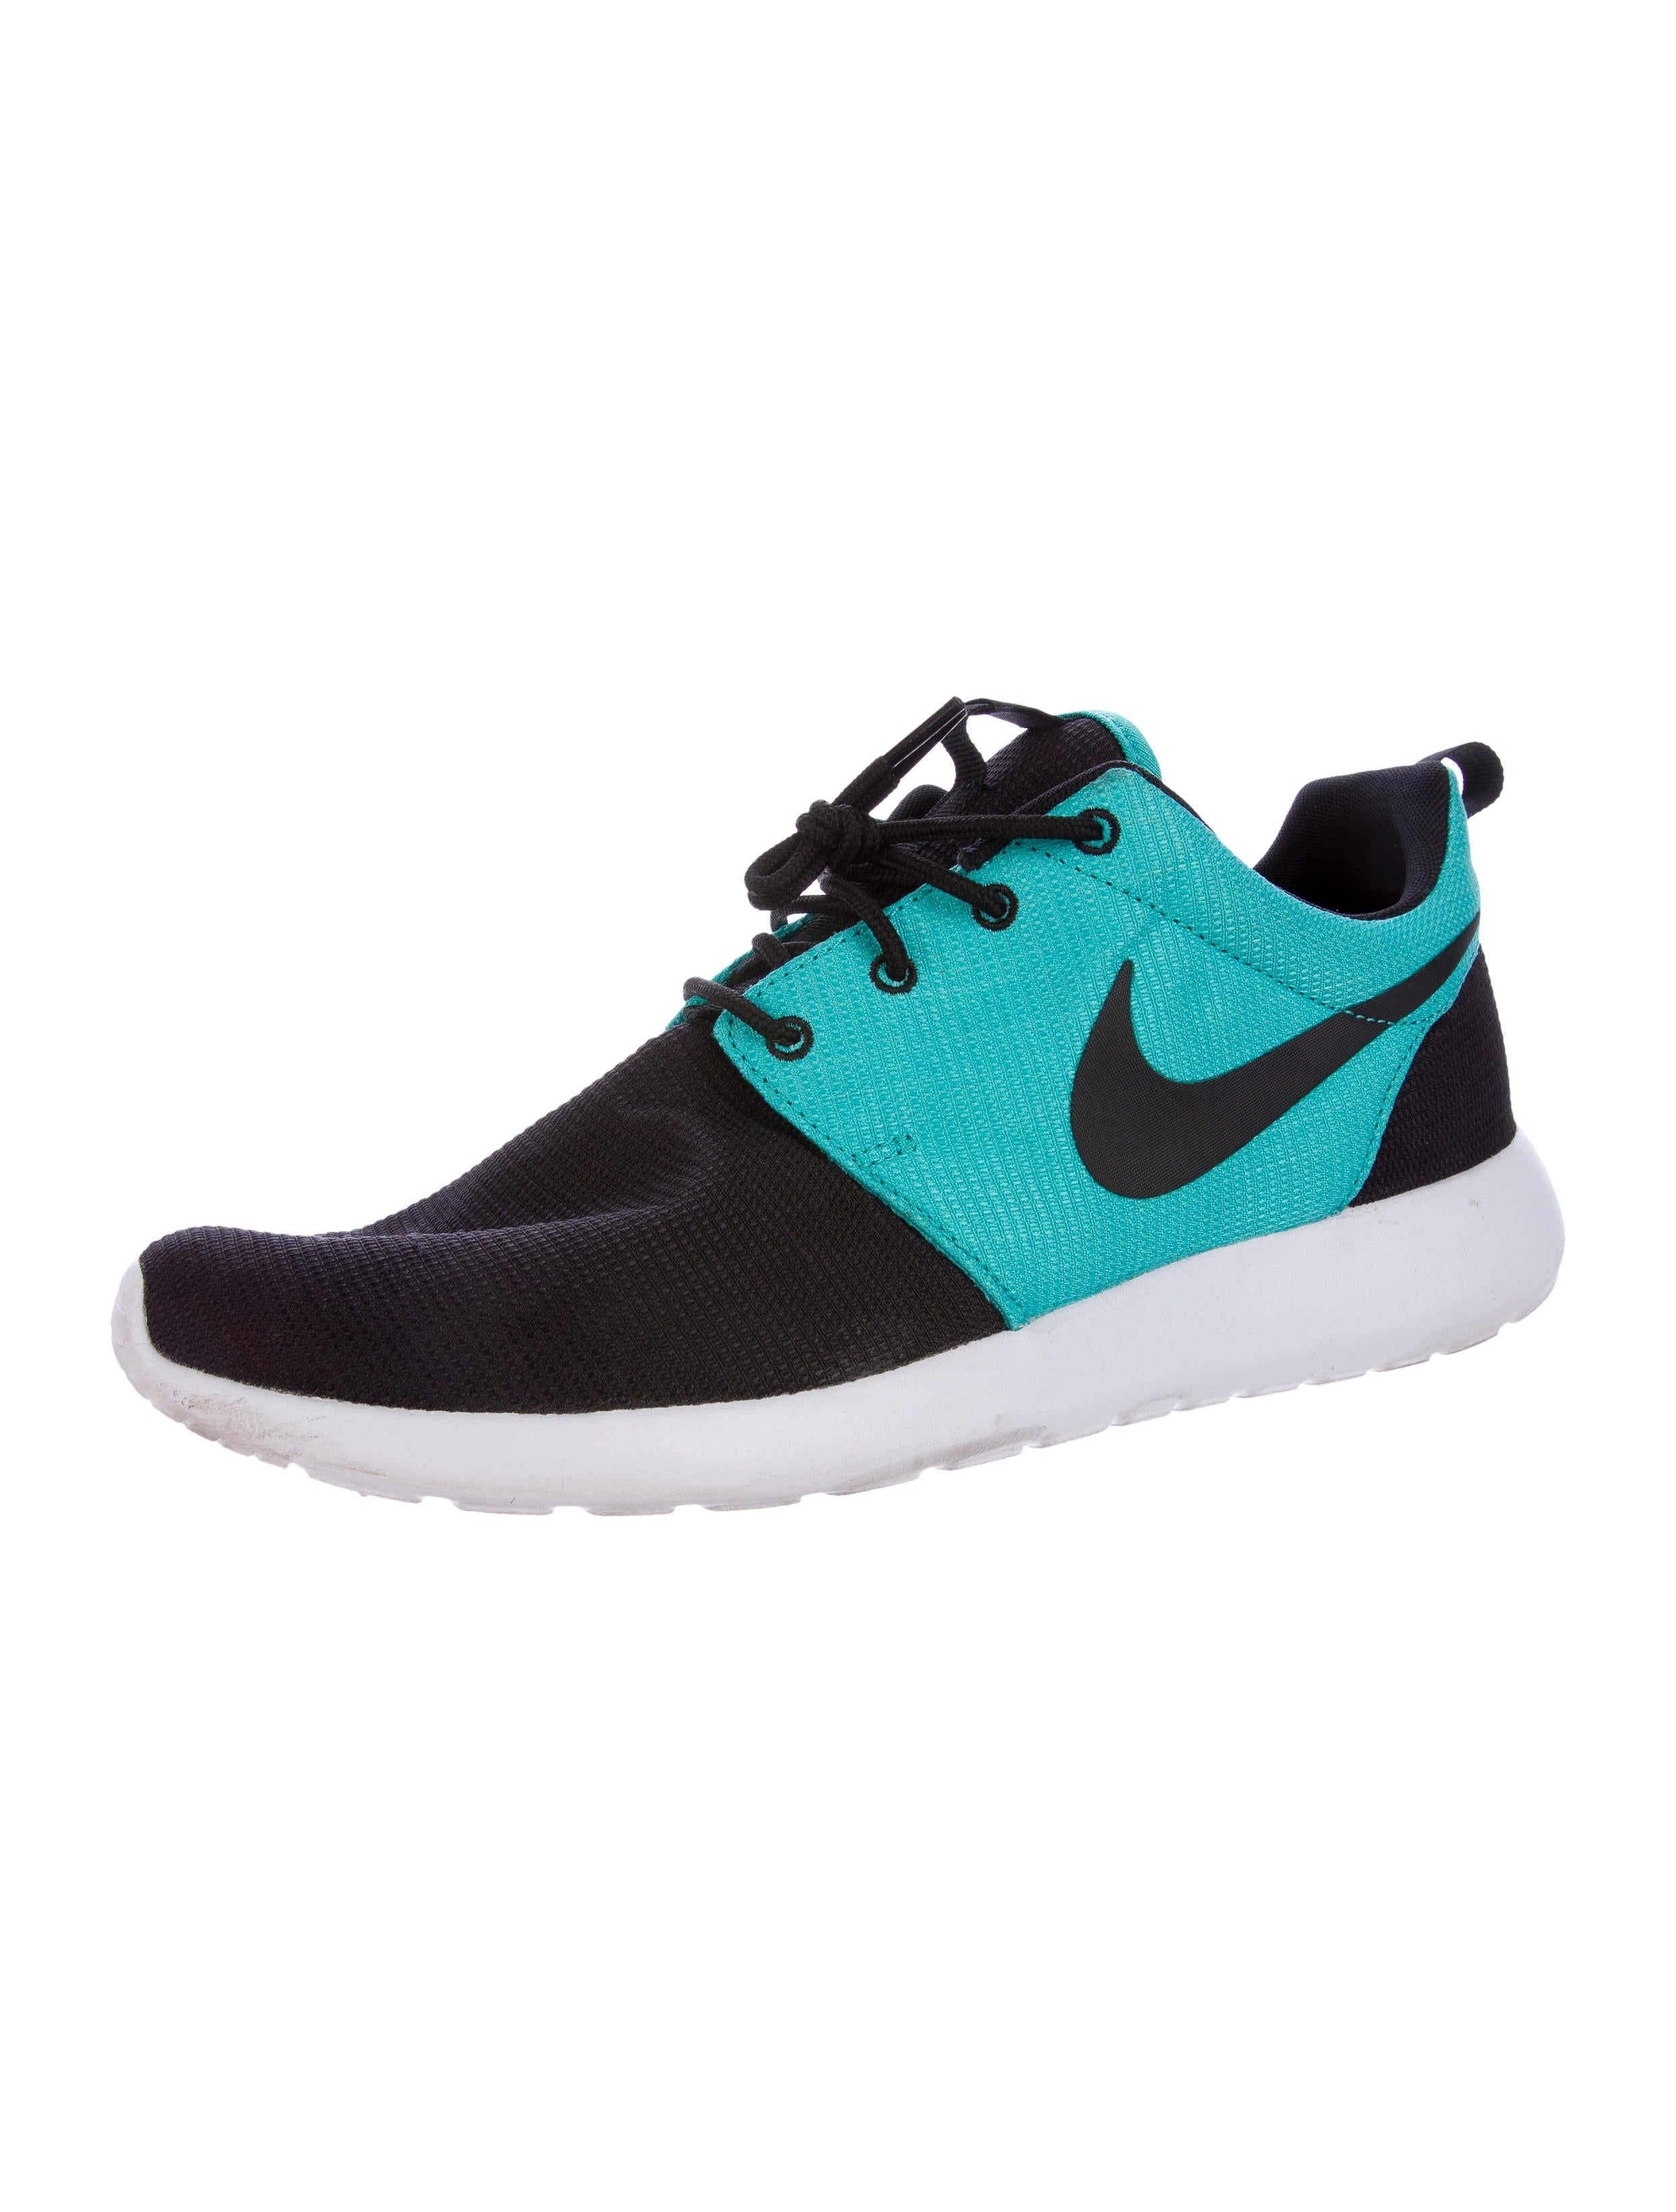 nike roshe run low top sneakers shoes wu221153 the. Black Bedroom Furniture Sets. Home Design Ideas